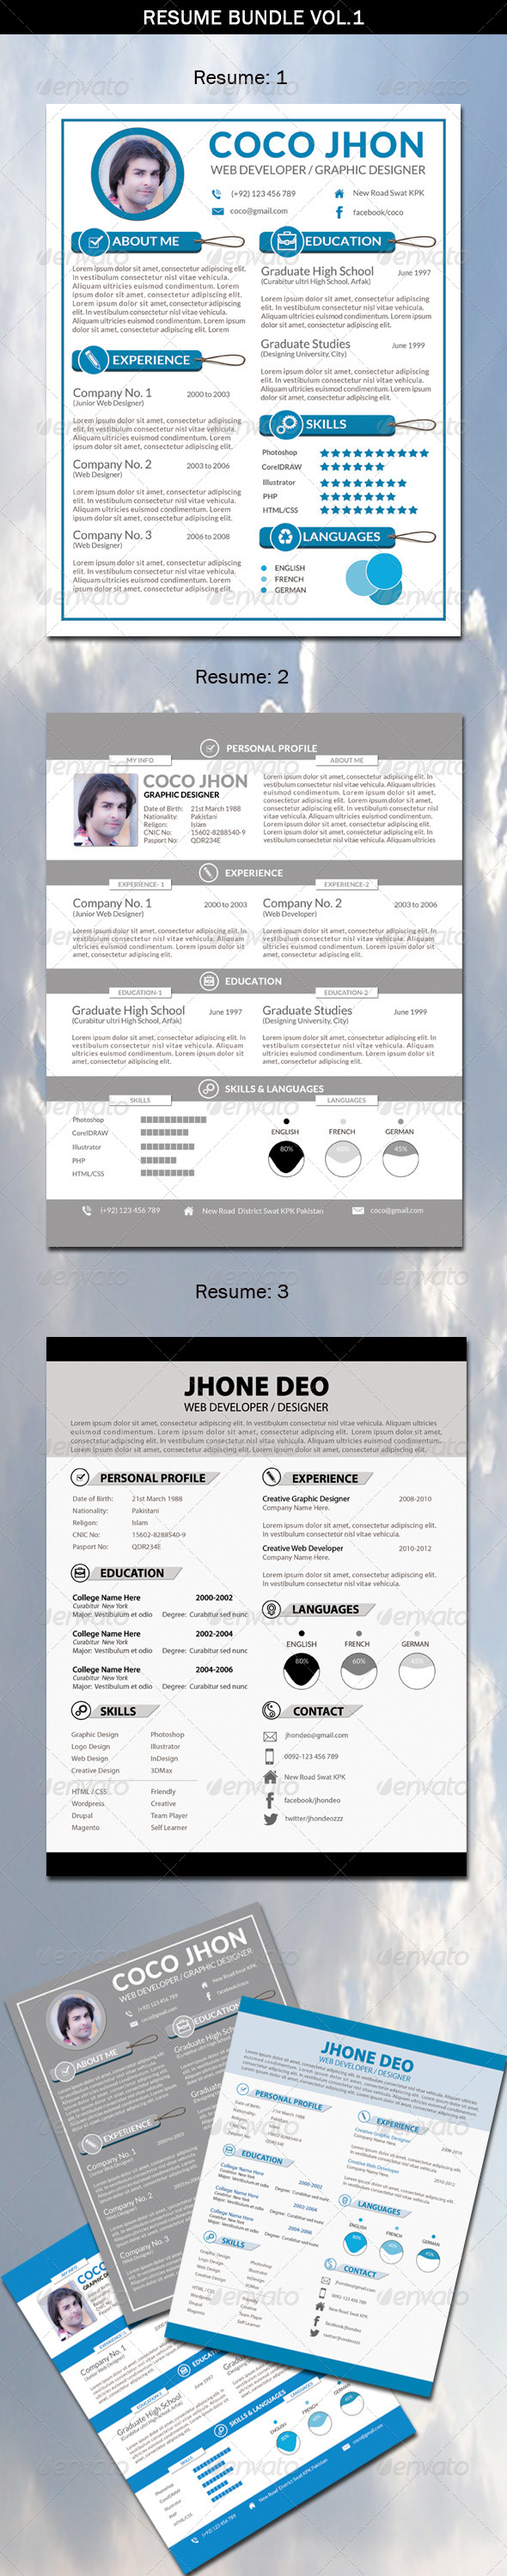 GraphicRiver Resume Bundle Vol.1 6375254